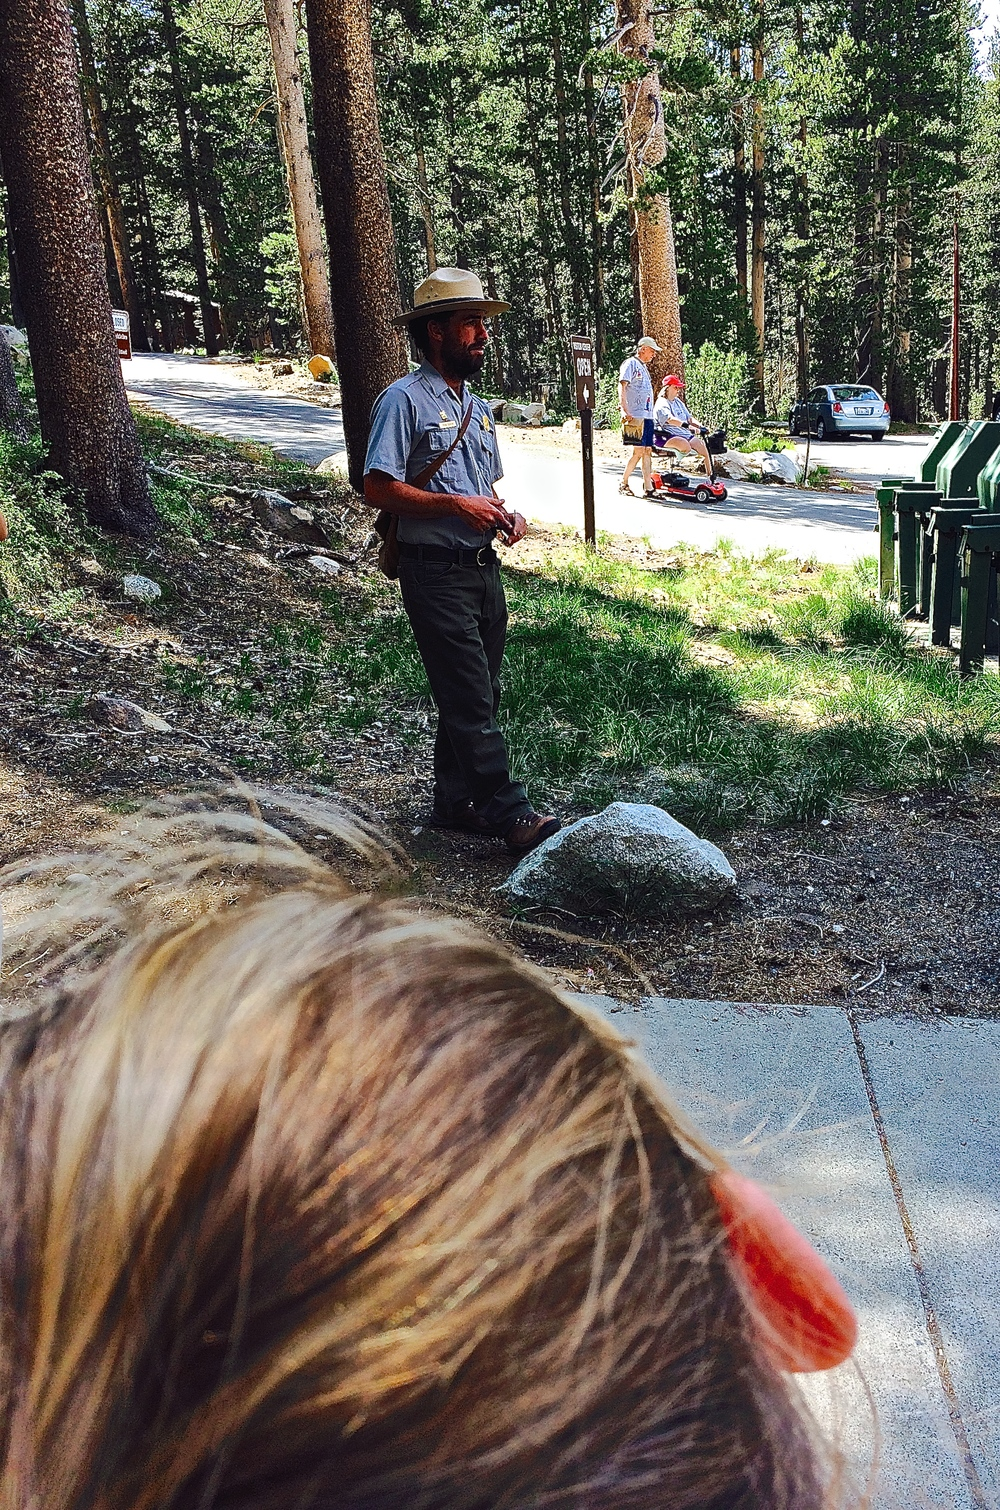 The Ranger talk at Tuolumne Meadows